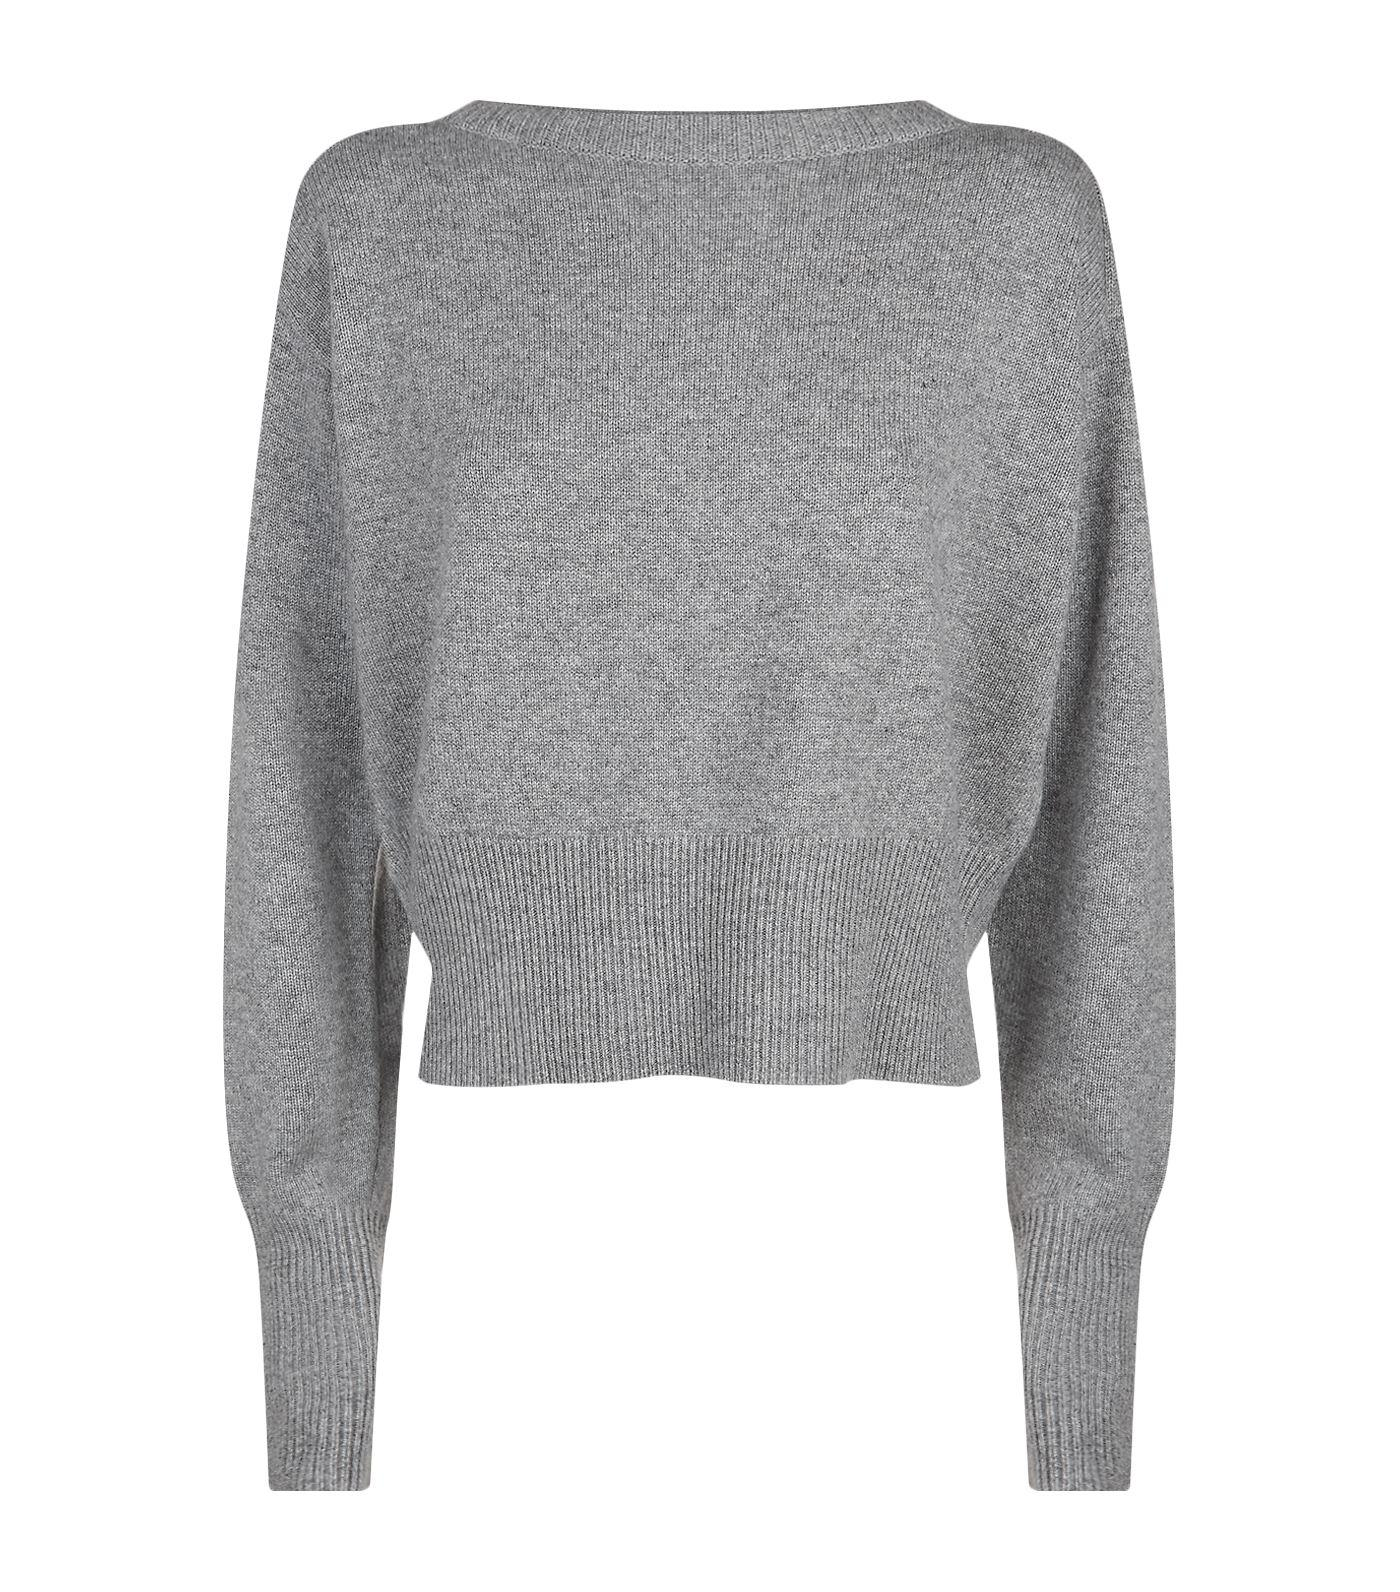 Theory Cropped Cashmere Sweater in Gray | Lyst